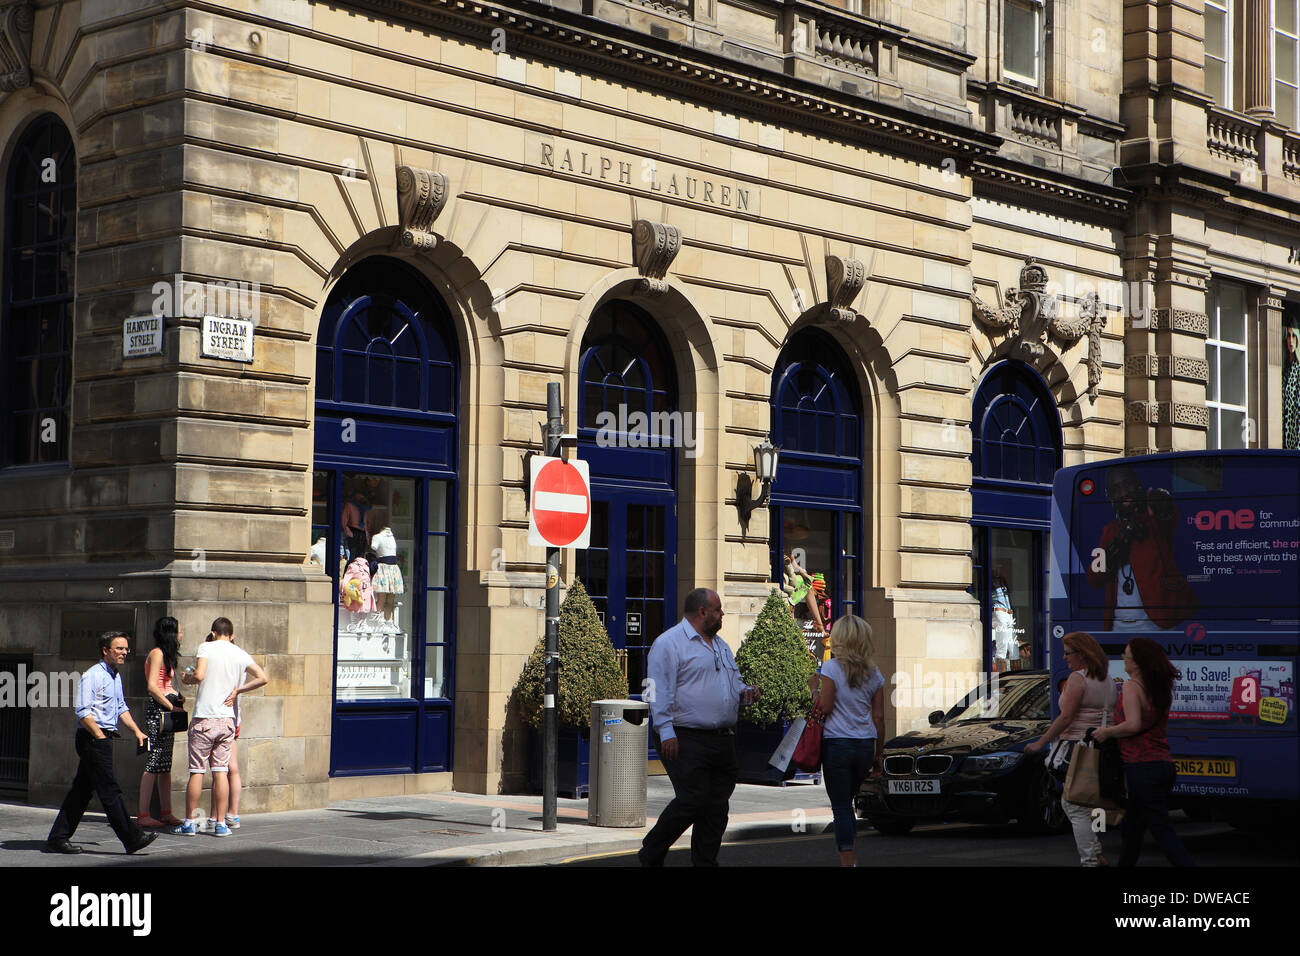 Ralph Lauren shop in Glasgow Scotland - Stock Image